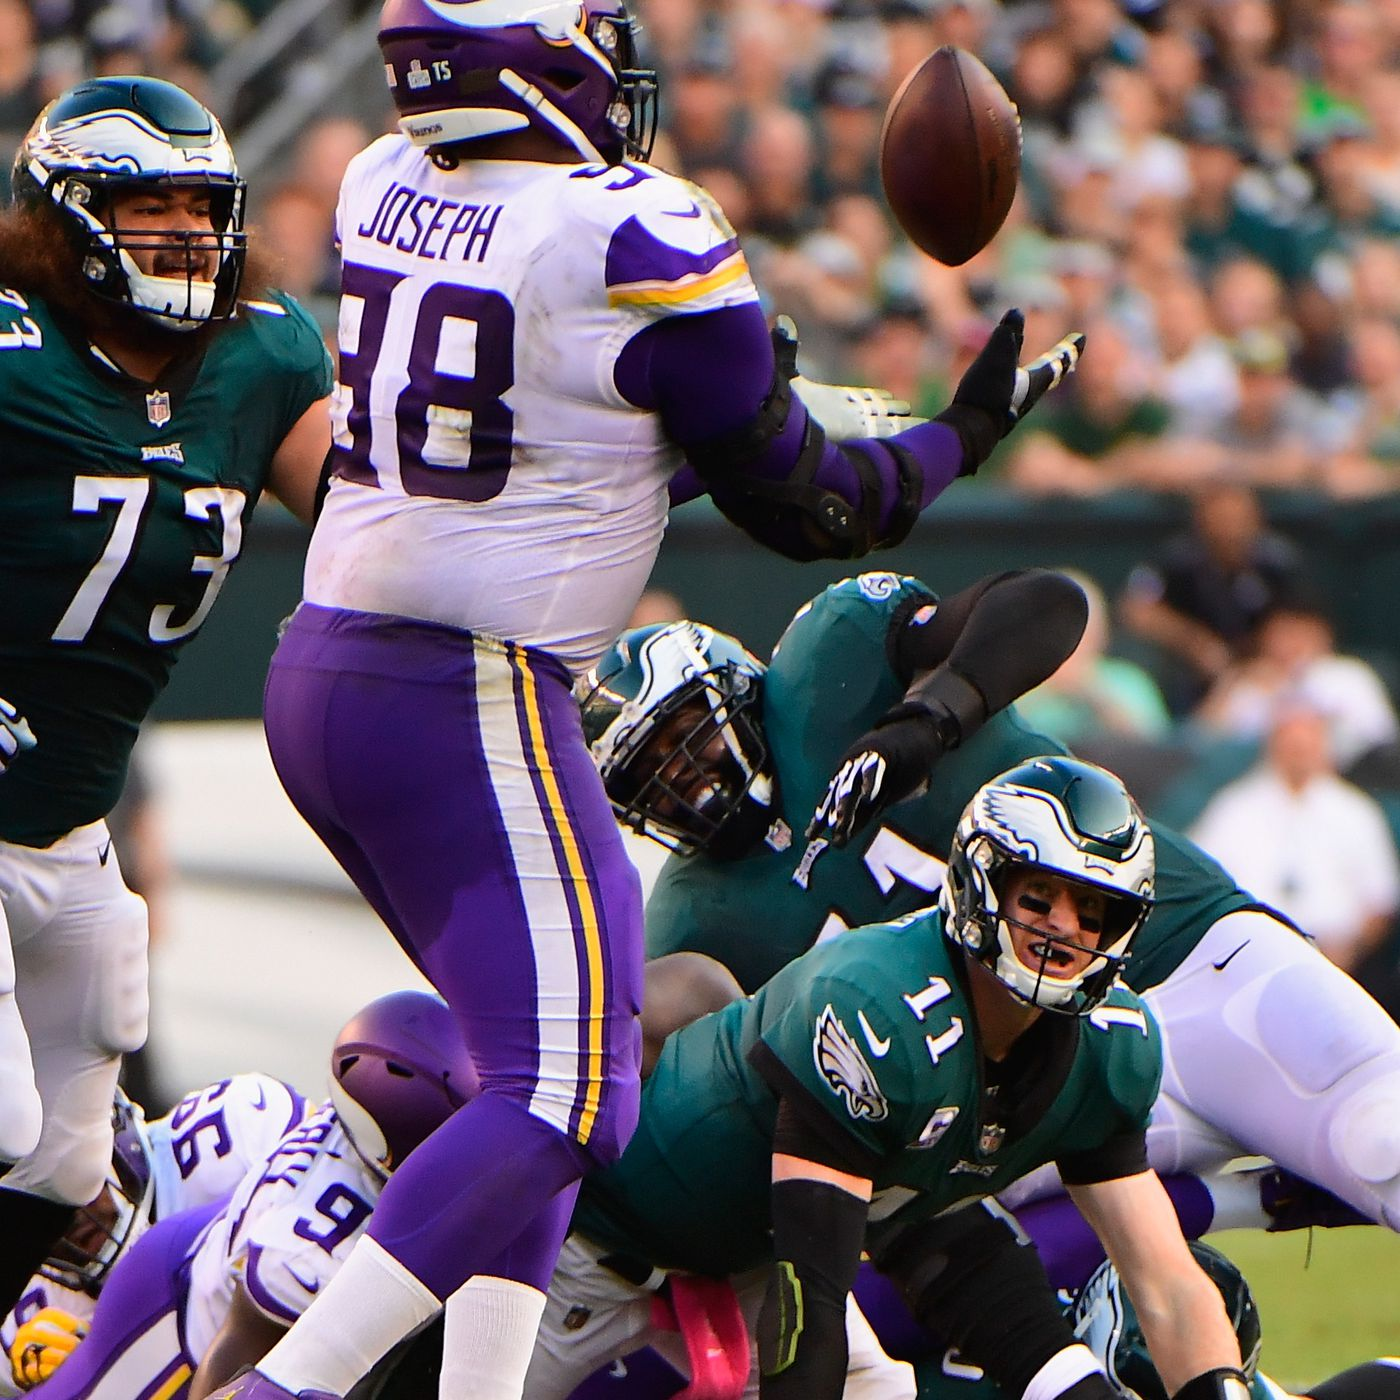 64b8d72c6 Minnesota Vikings at New York Jets: Inactive lists for both teams ...